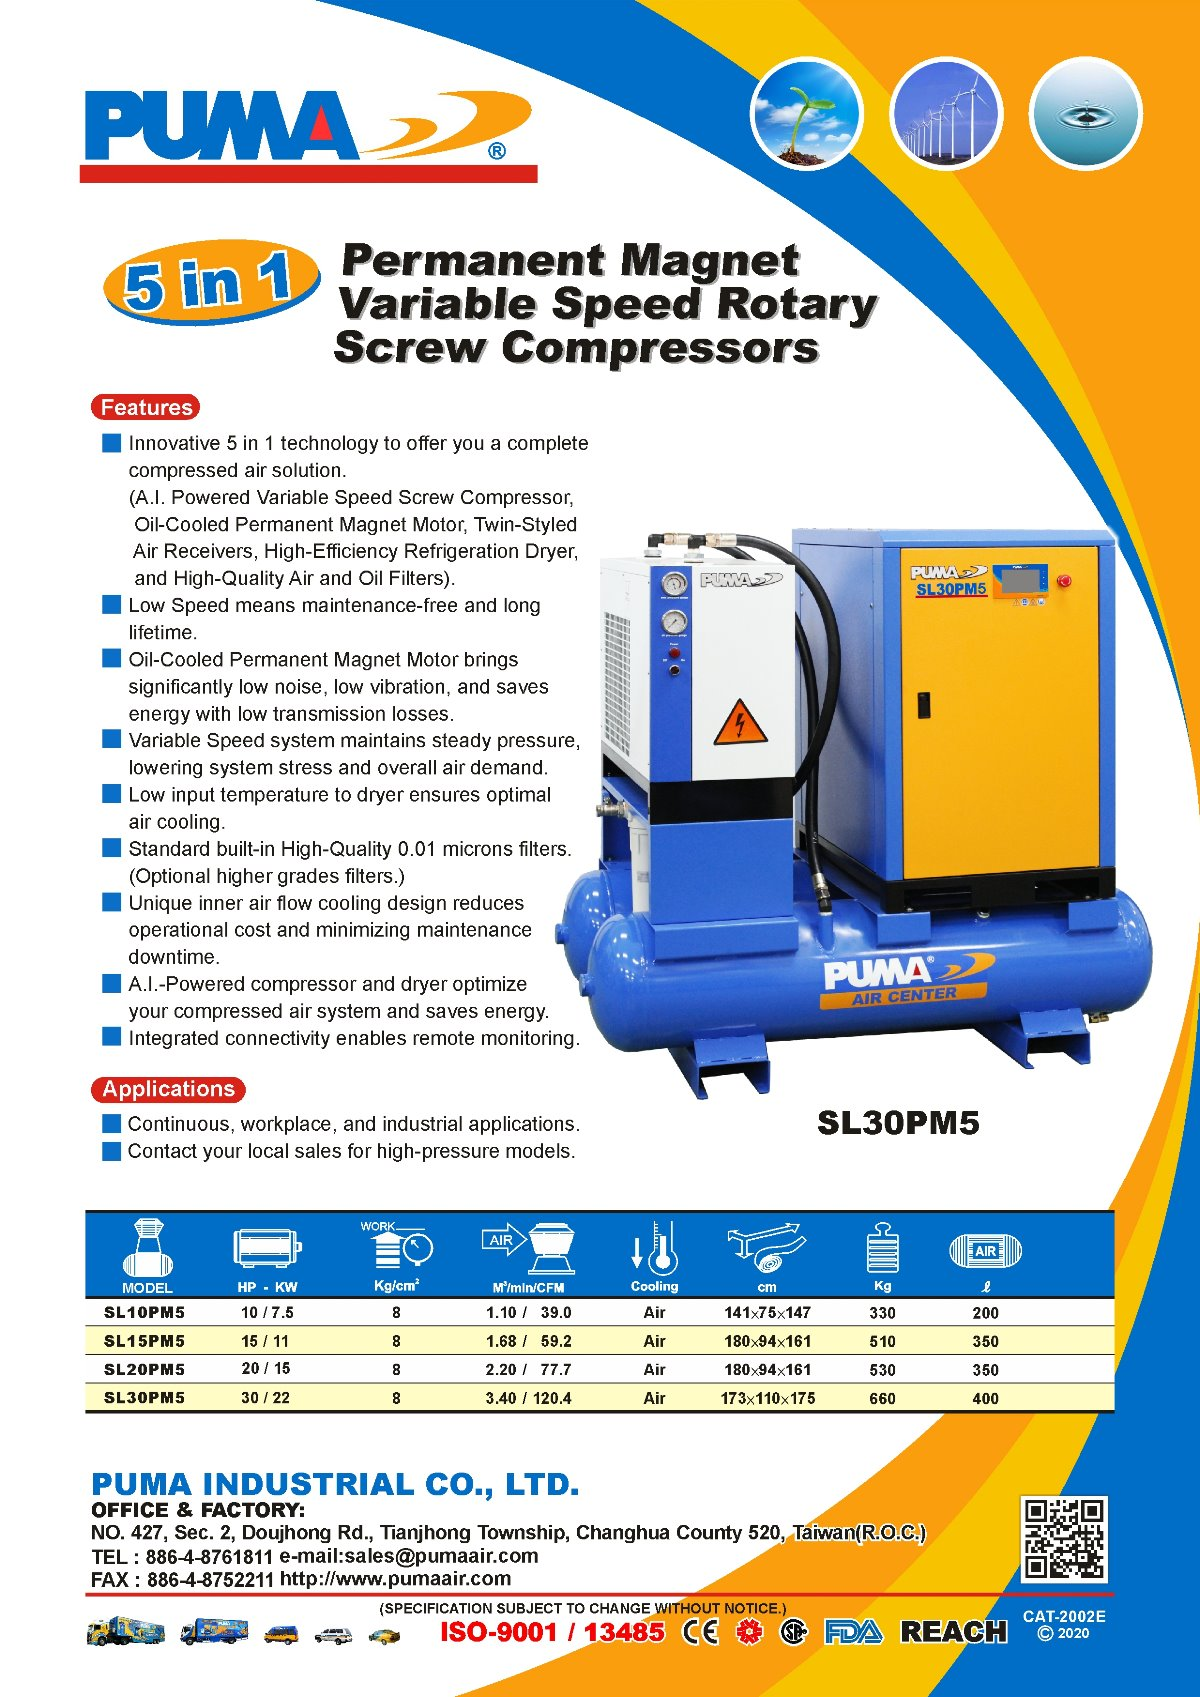 PUMA 5 in 1 Permanent Magnet Variable Speed Rotary Screw Compressors